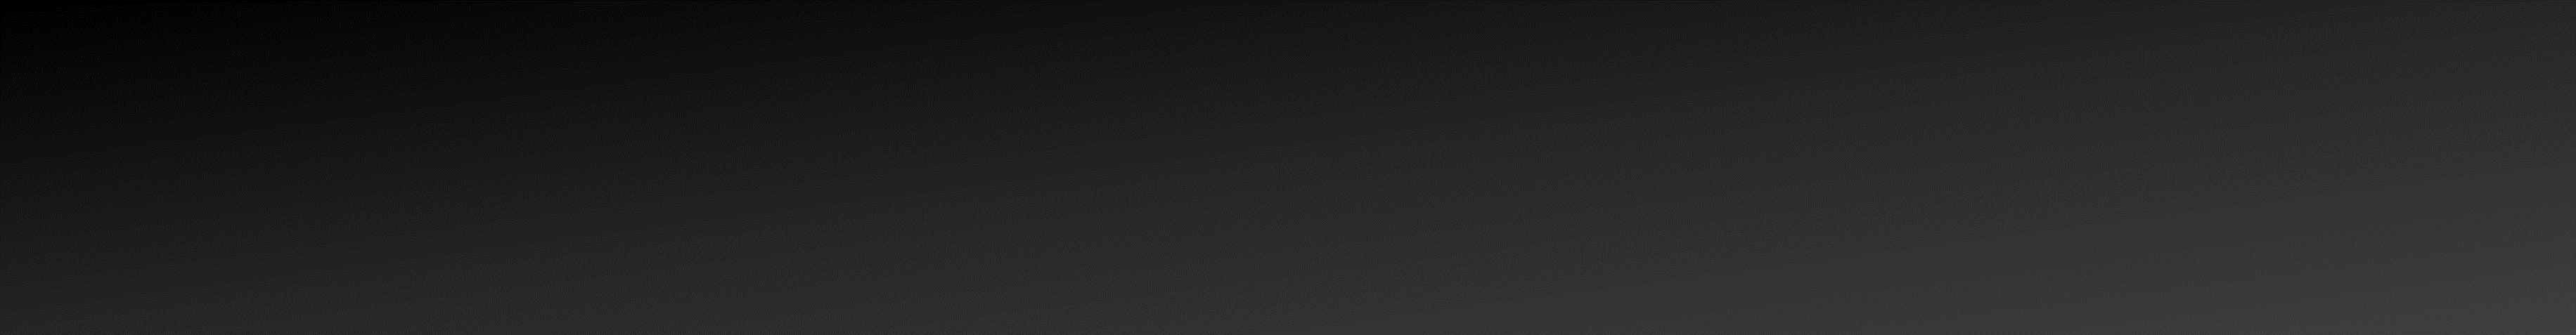 Black box gradient 2345x305